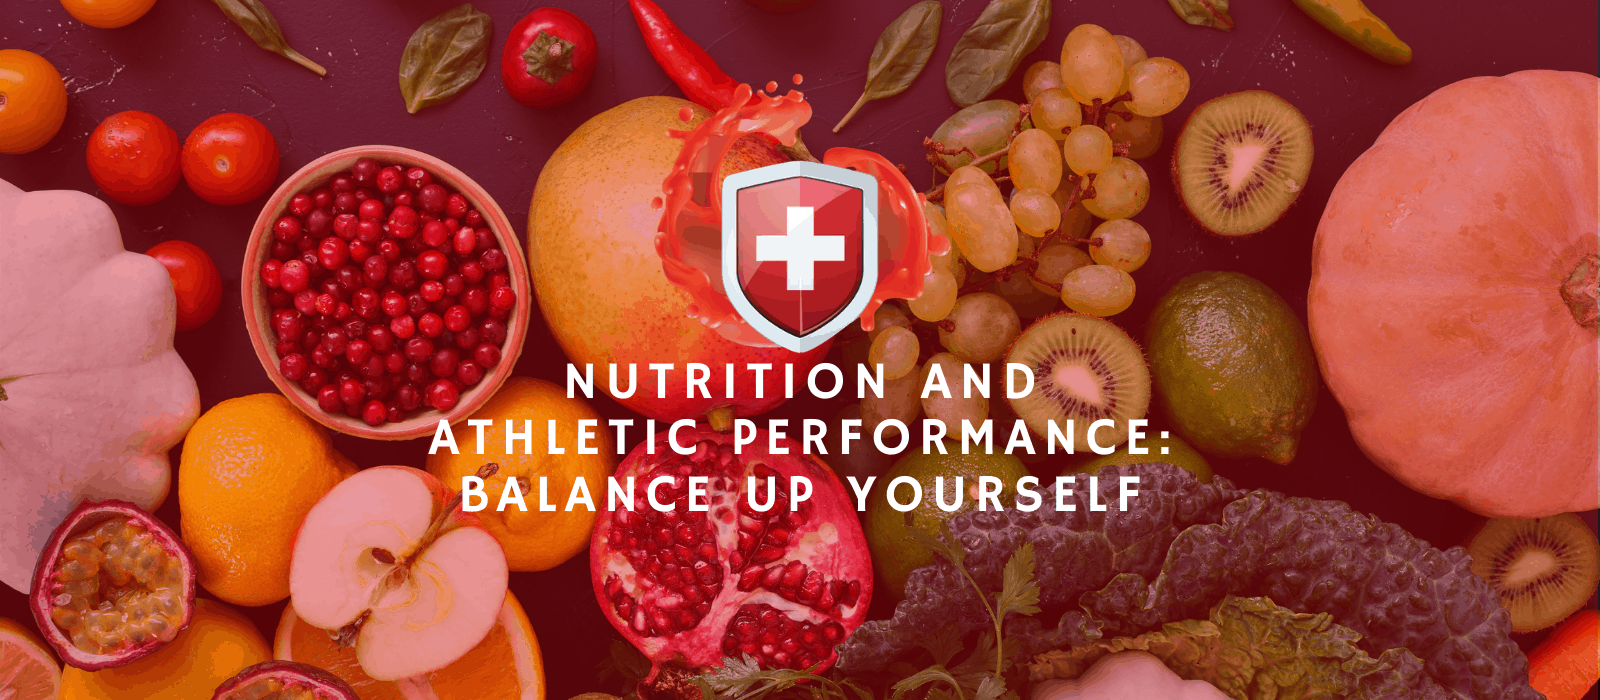 Improve your athletic performance